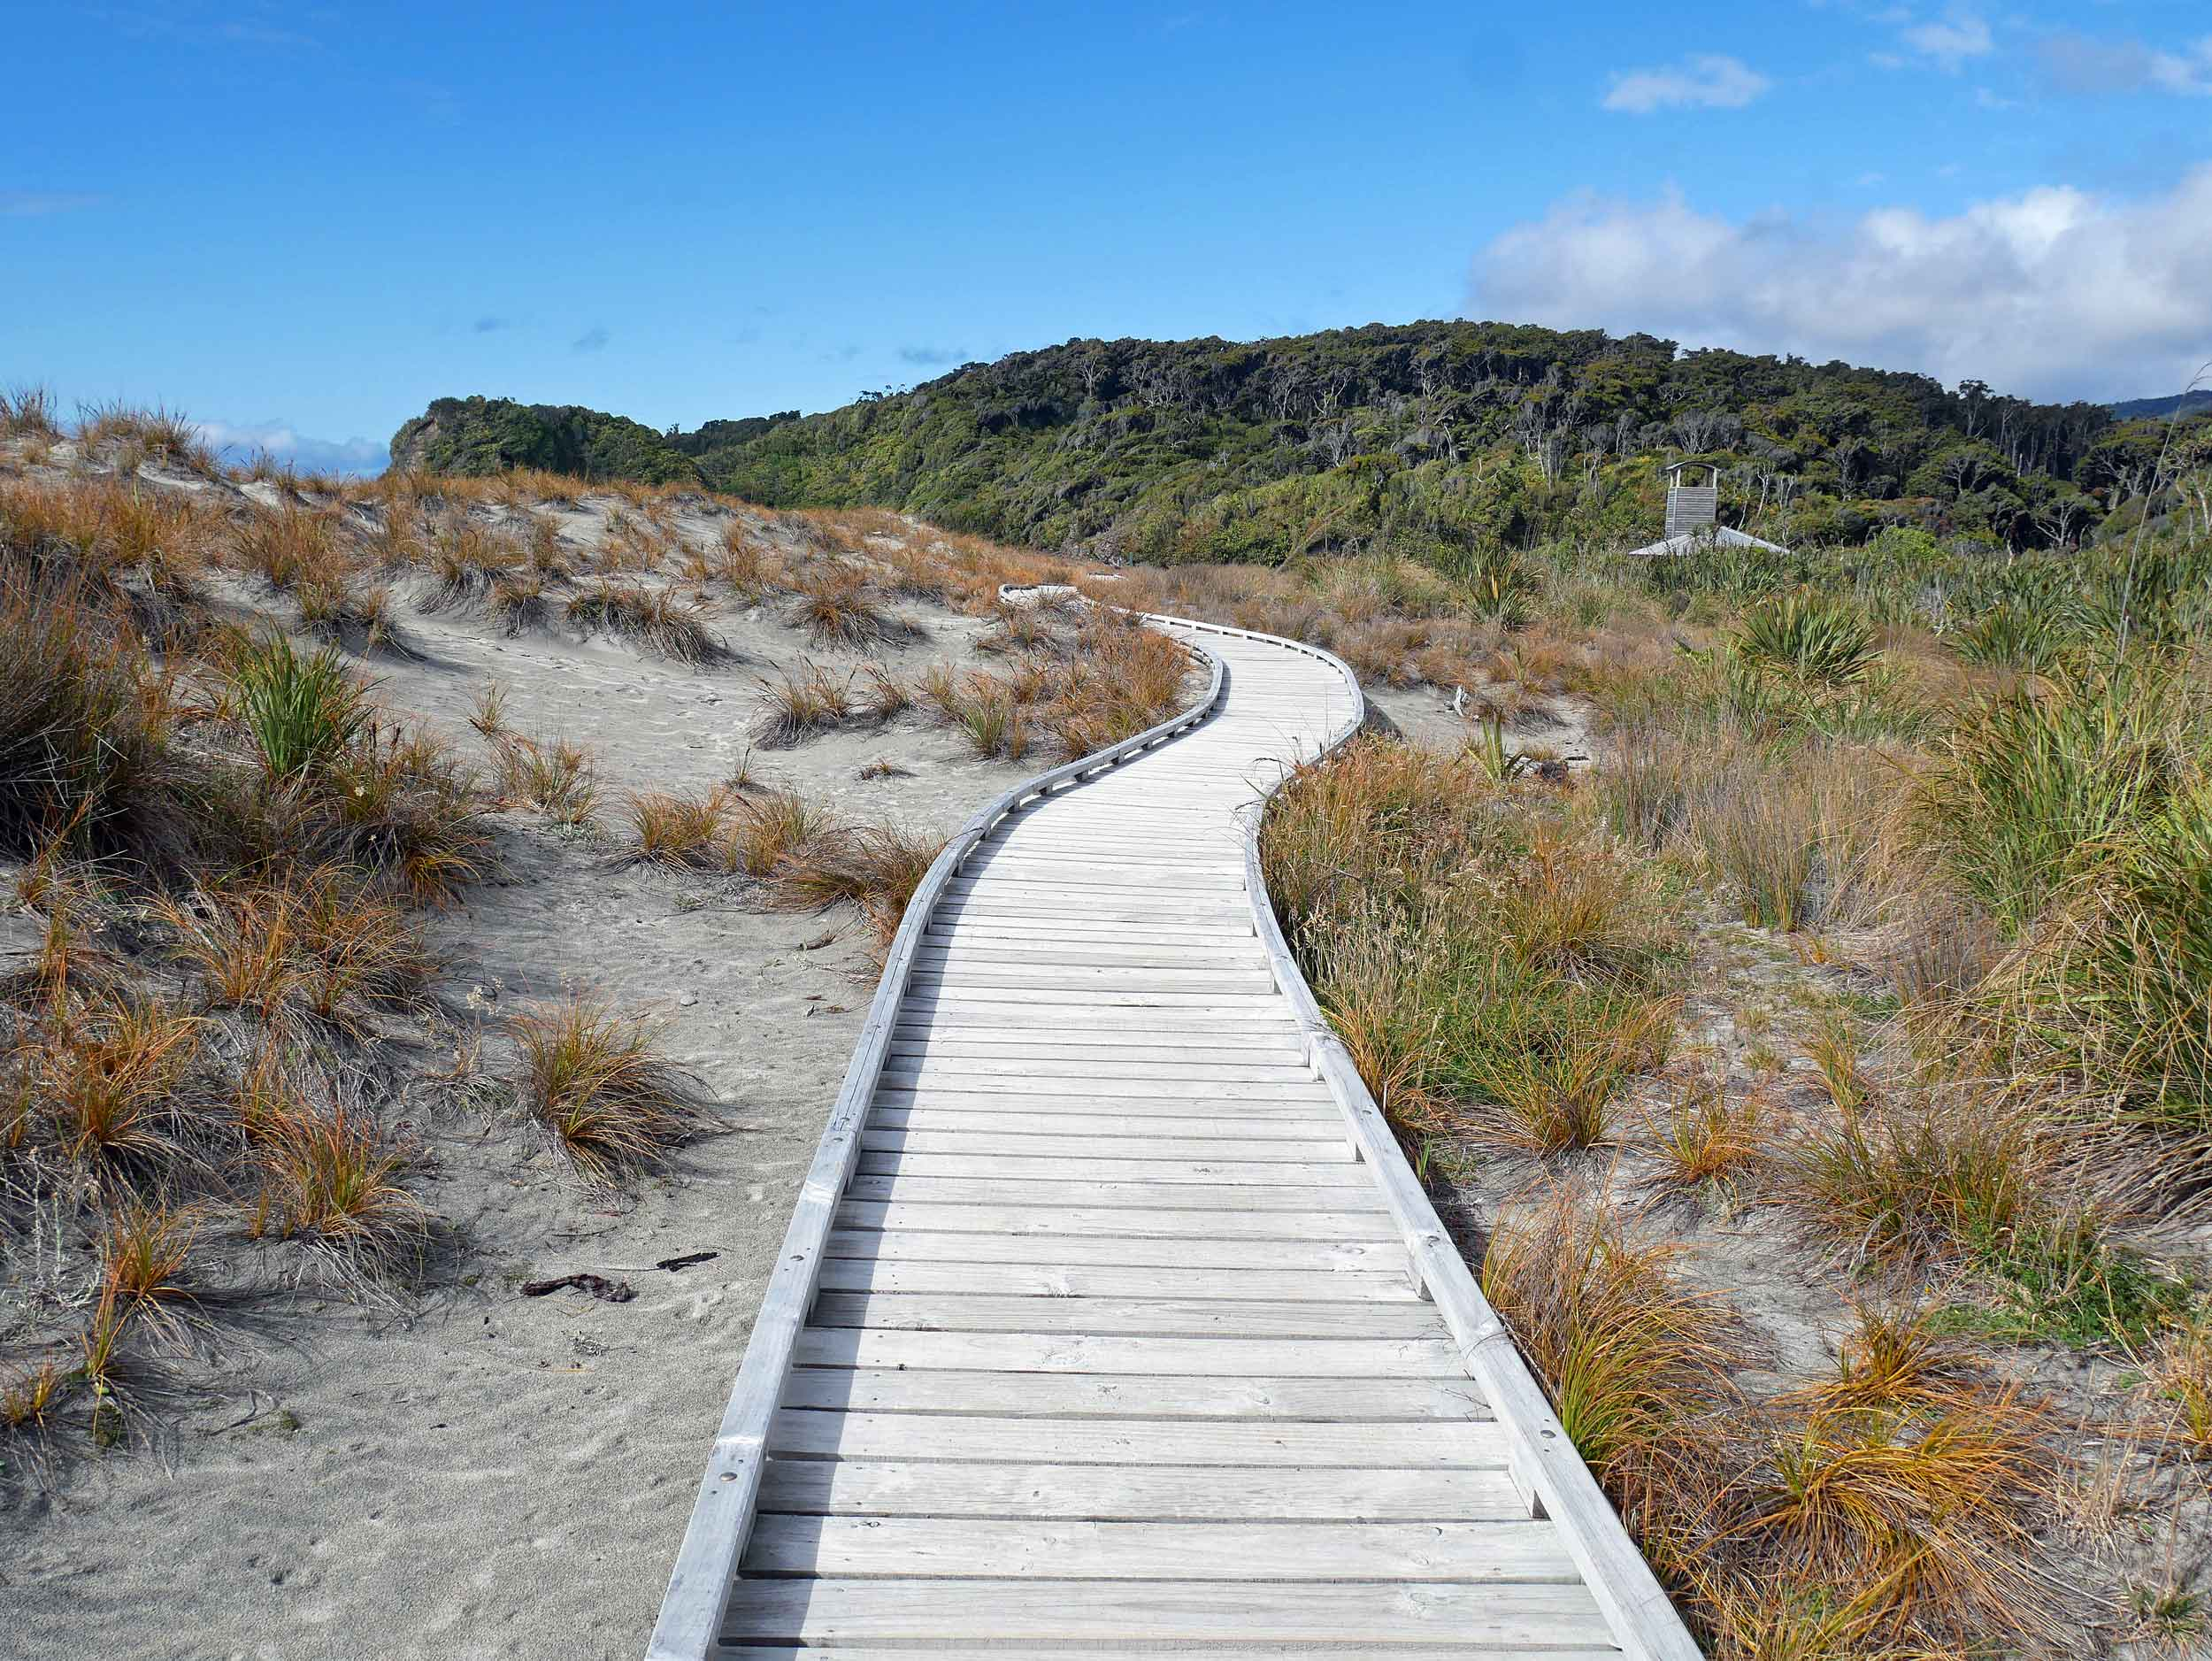 A scenic walk through the Ship Creek dunes with sea grass, driftwood and rocky sands (Jan 5).